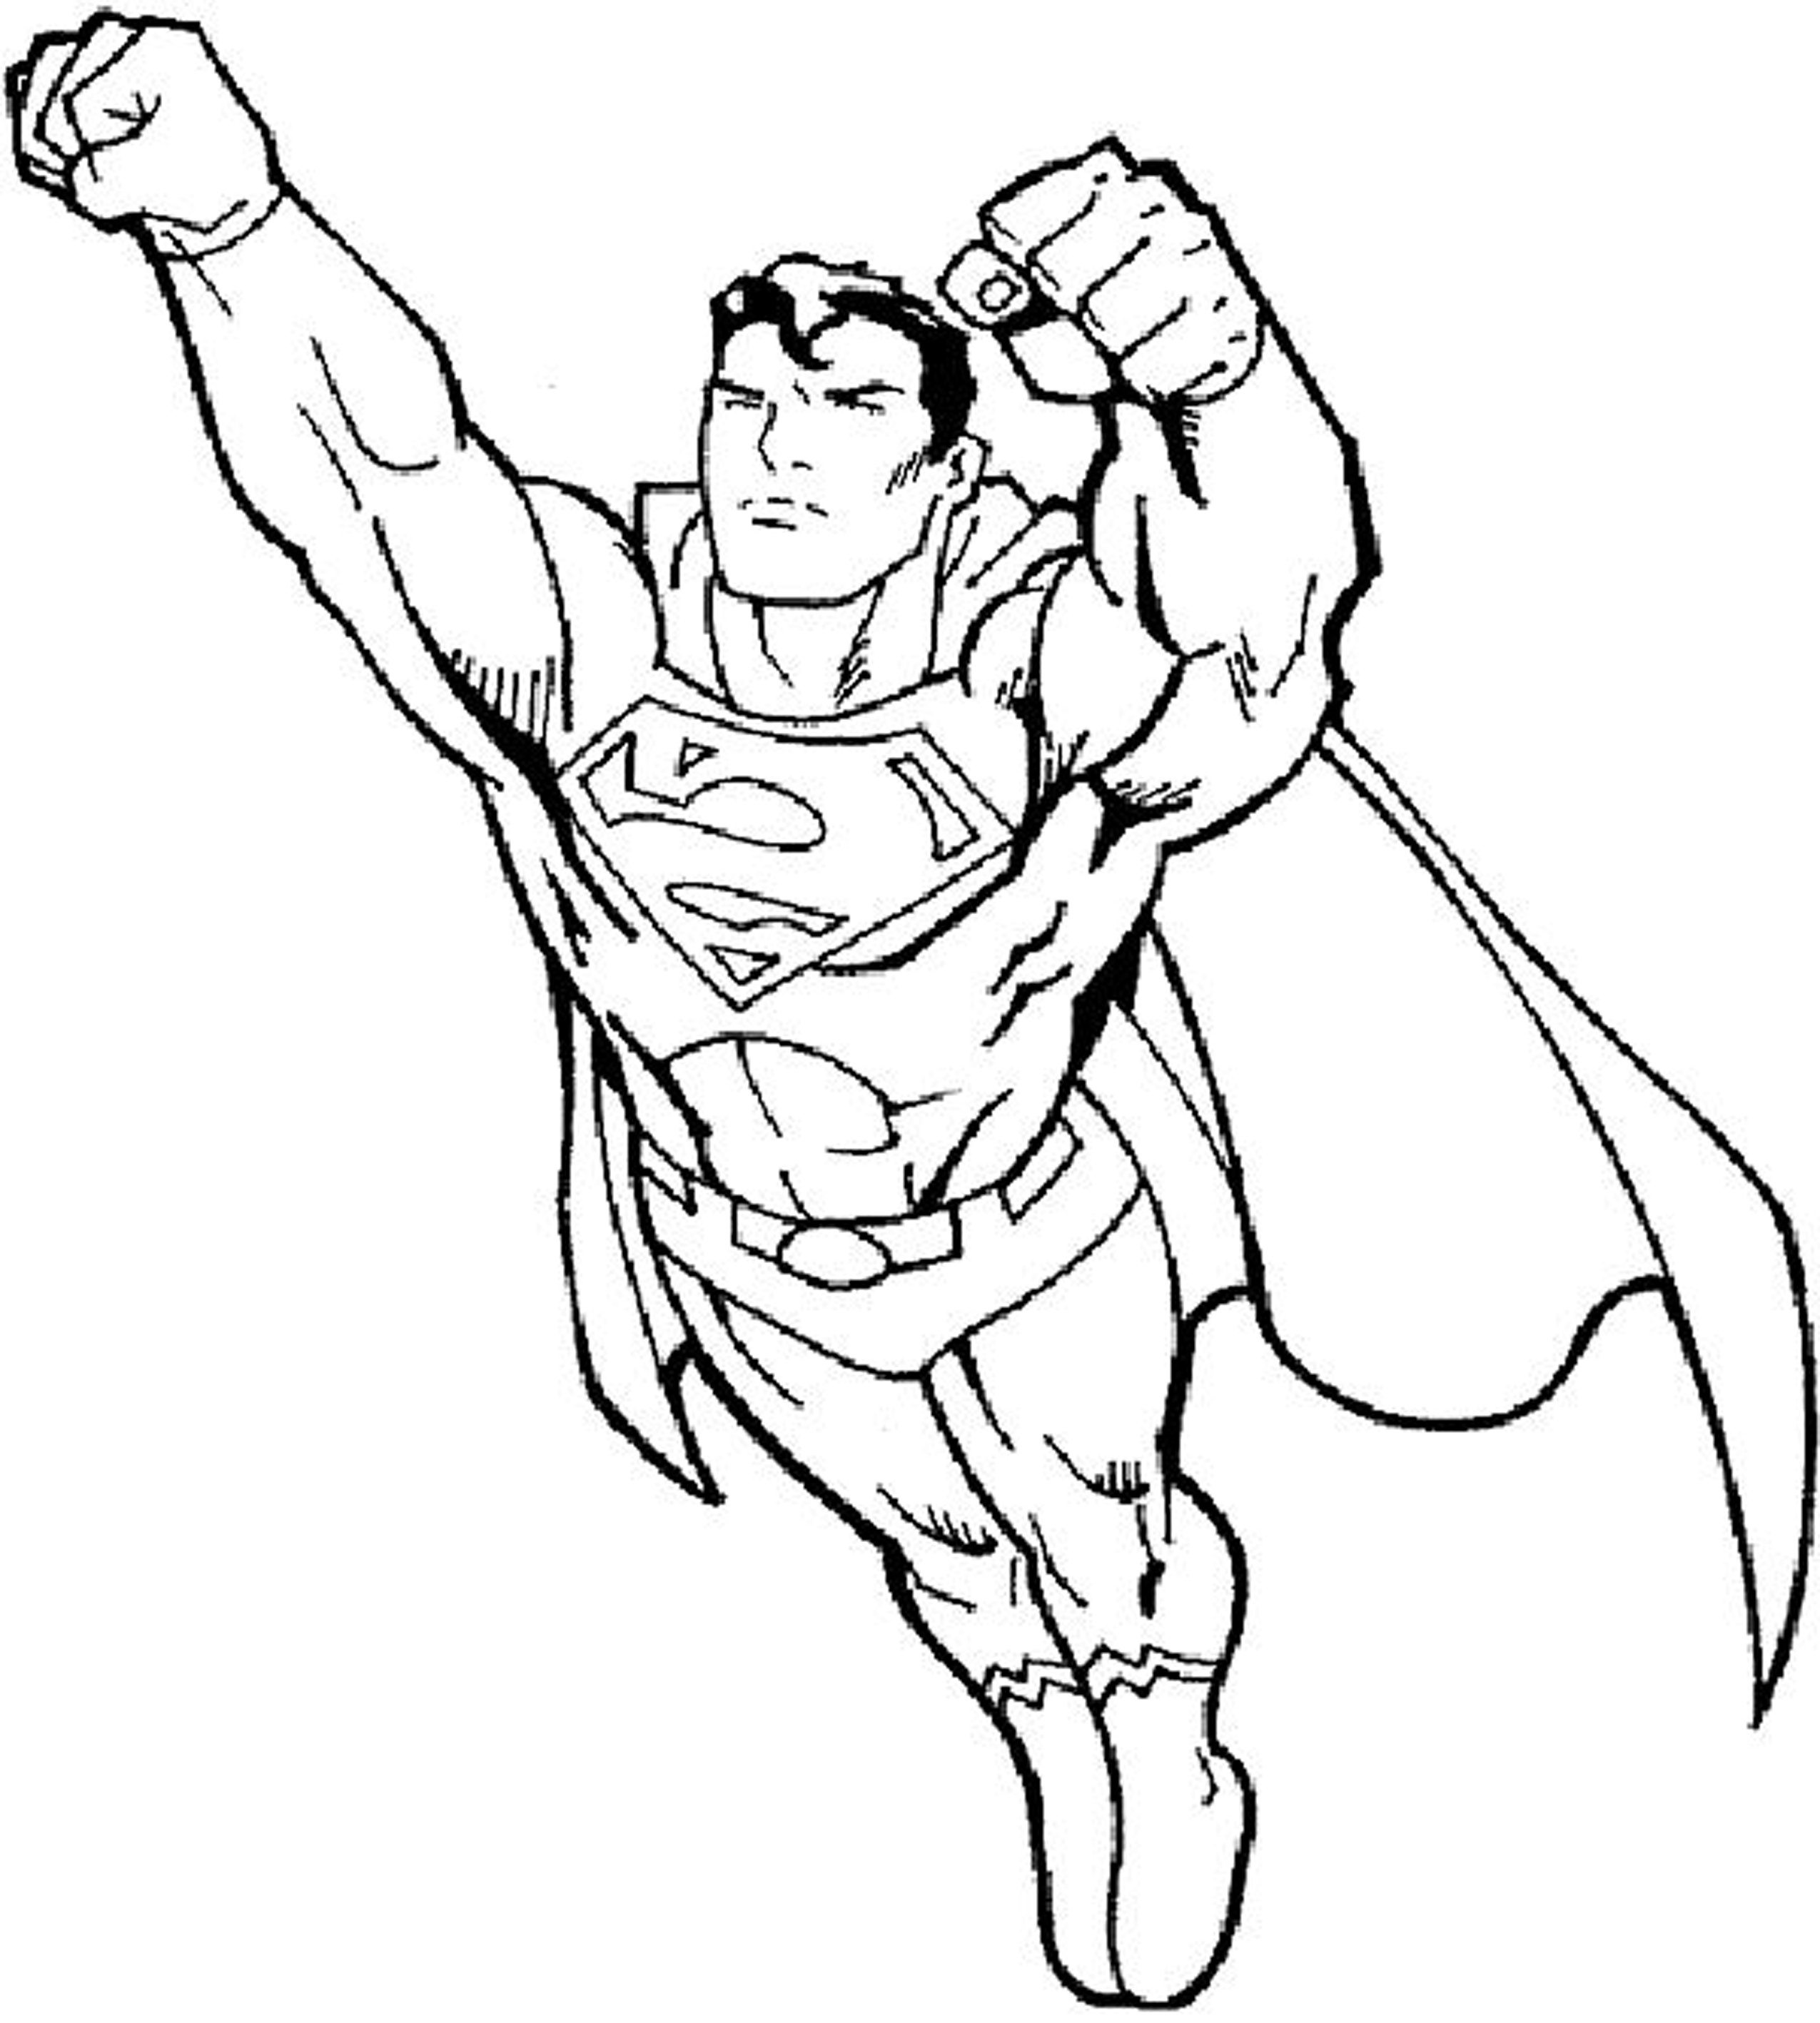 coloring picture man free printable iron man coloring pages for kids picture coloring man